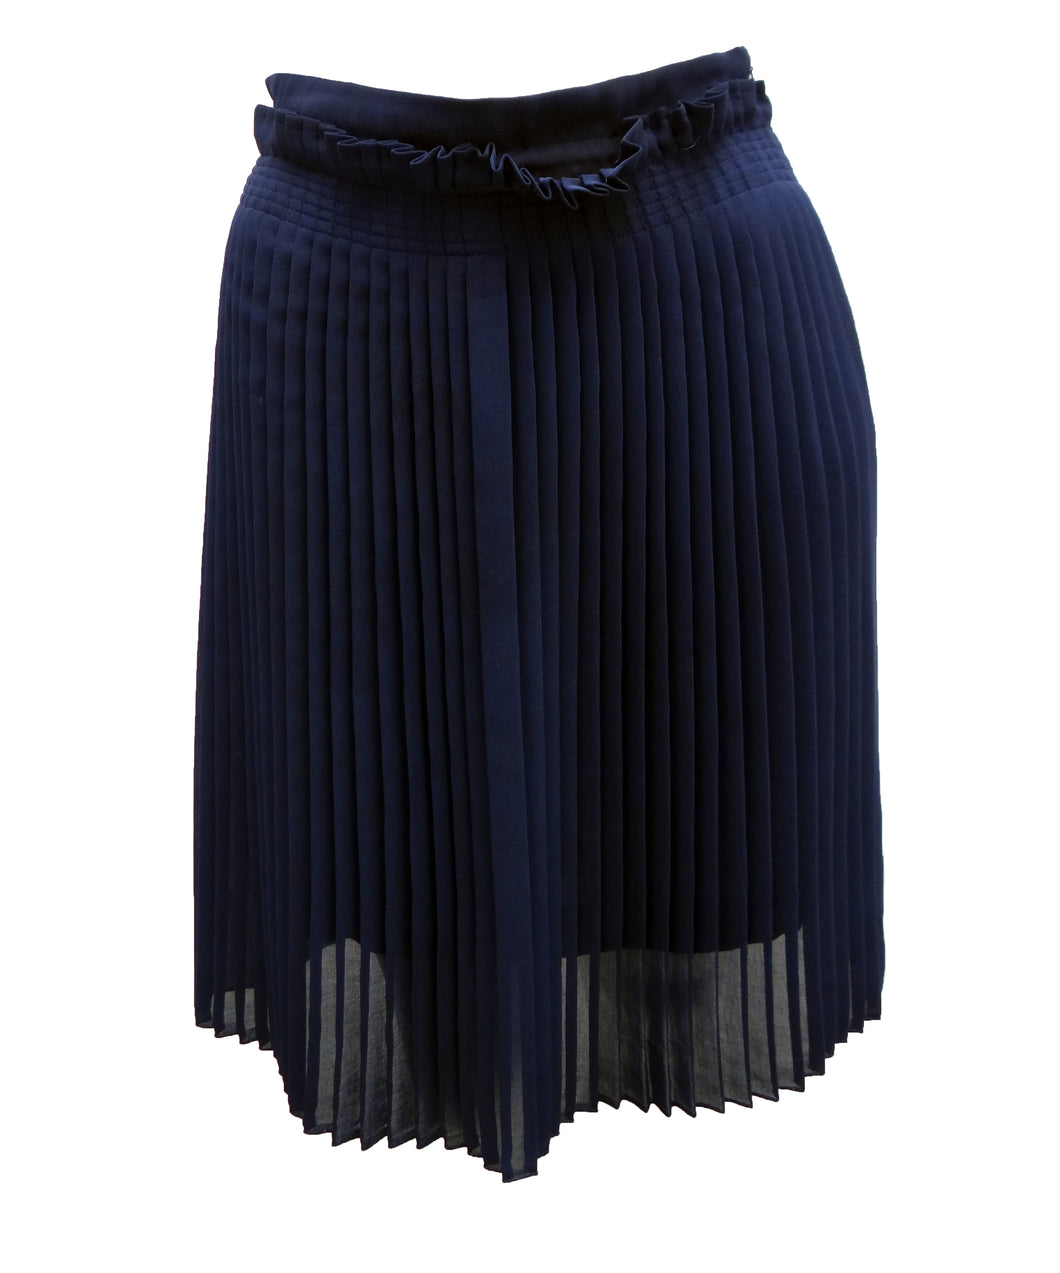 Annemie Verbeke Navy Pleated Skirt, UK8-10